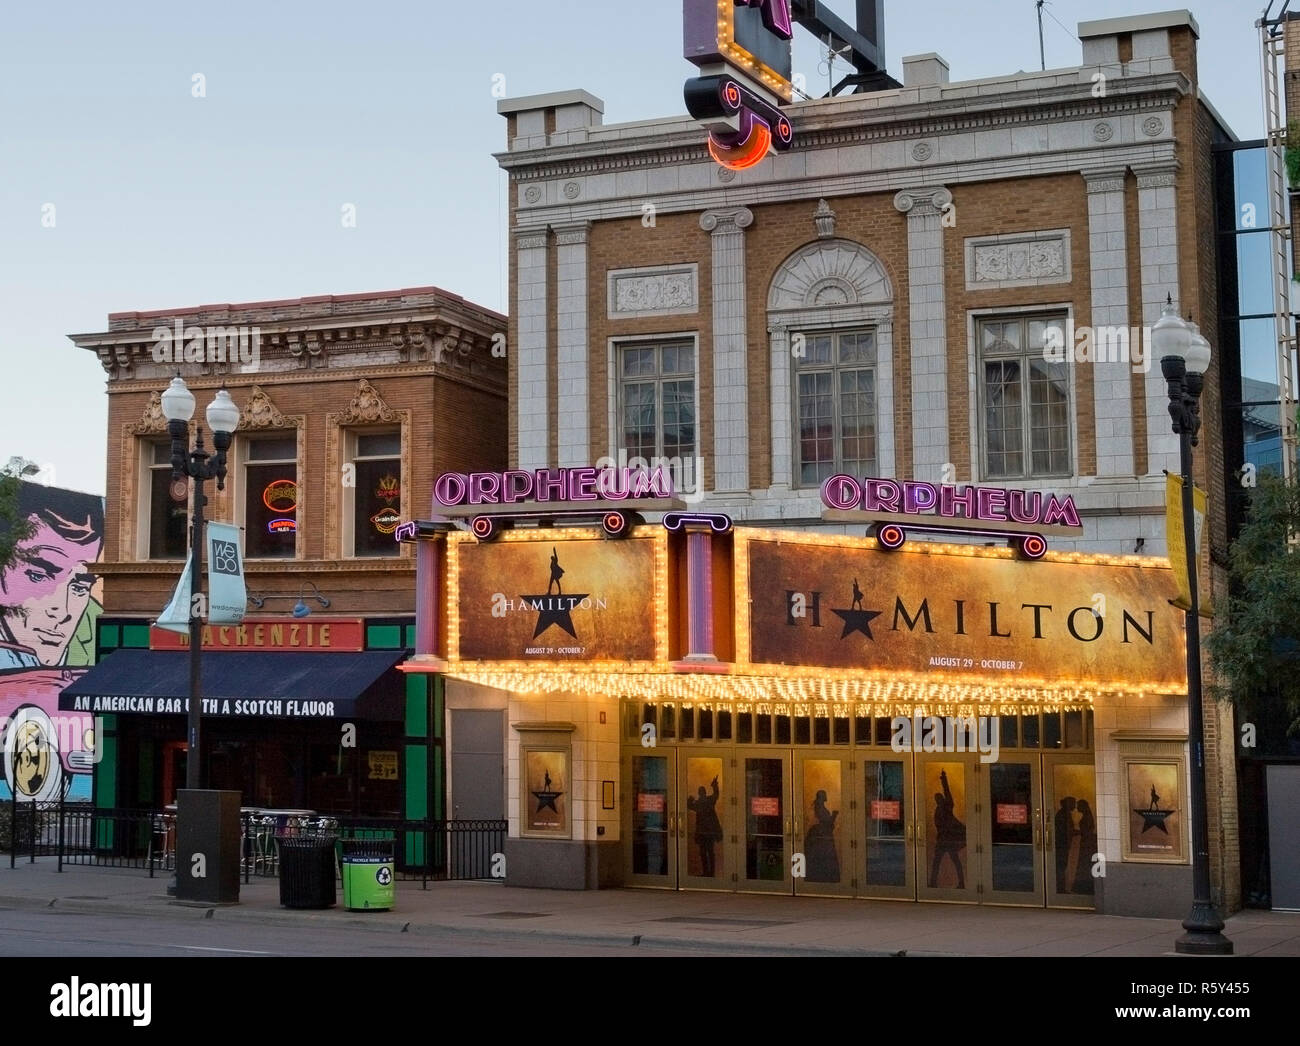 The Orpheum Theatre marquee advertising the broadway musical Hamilton in Minneapolis, Minnesota - Stock Image